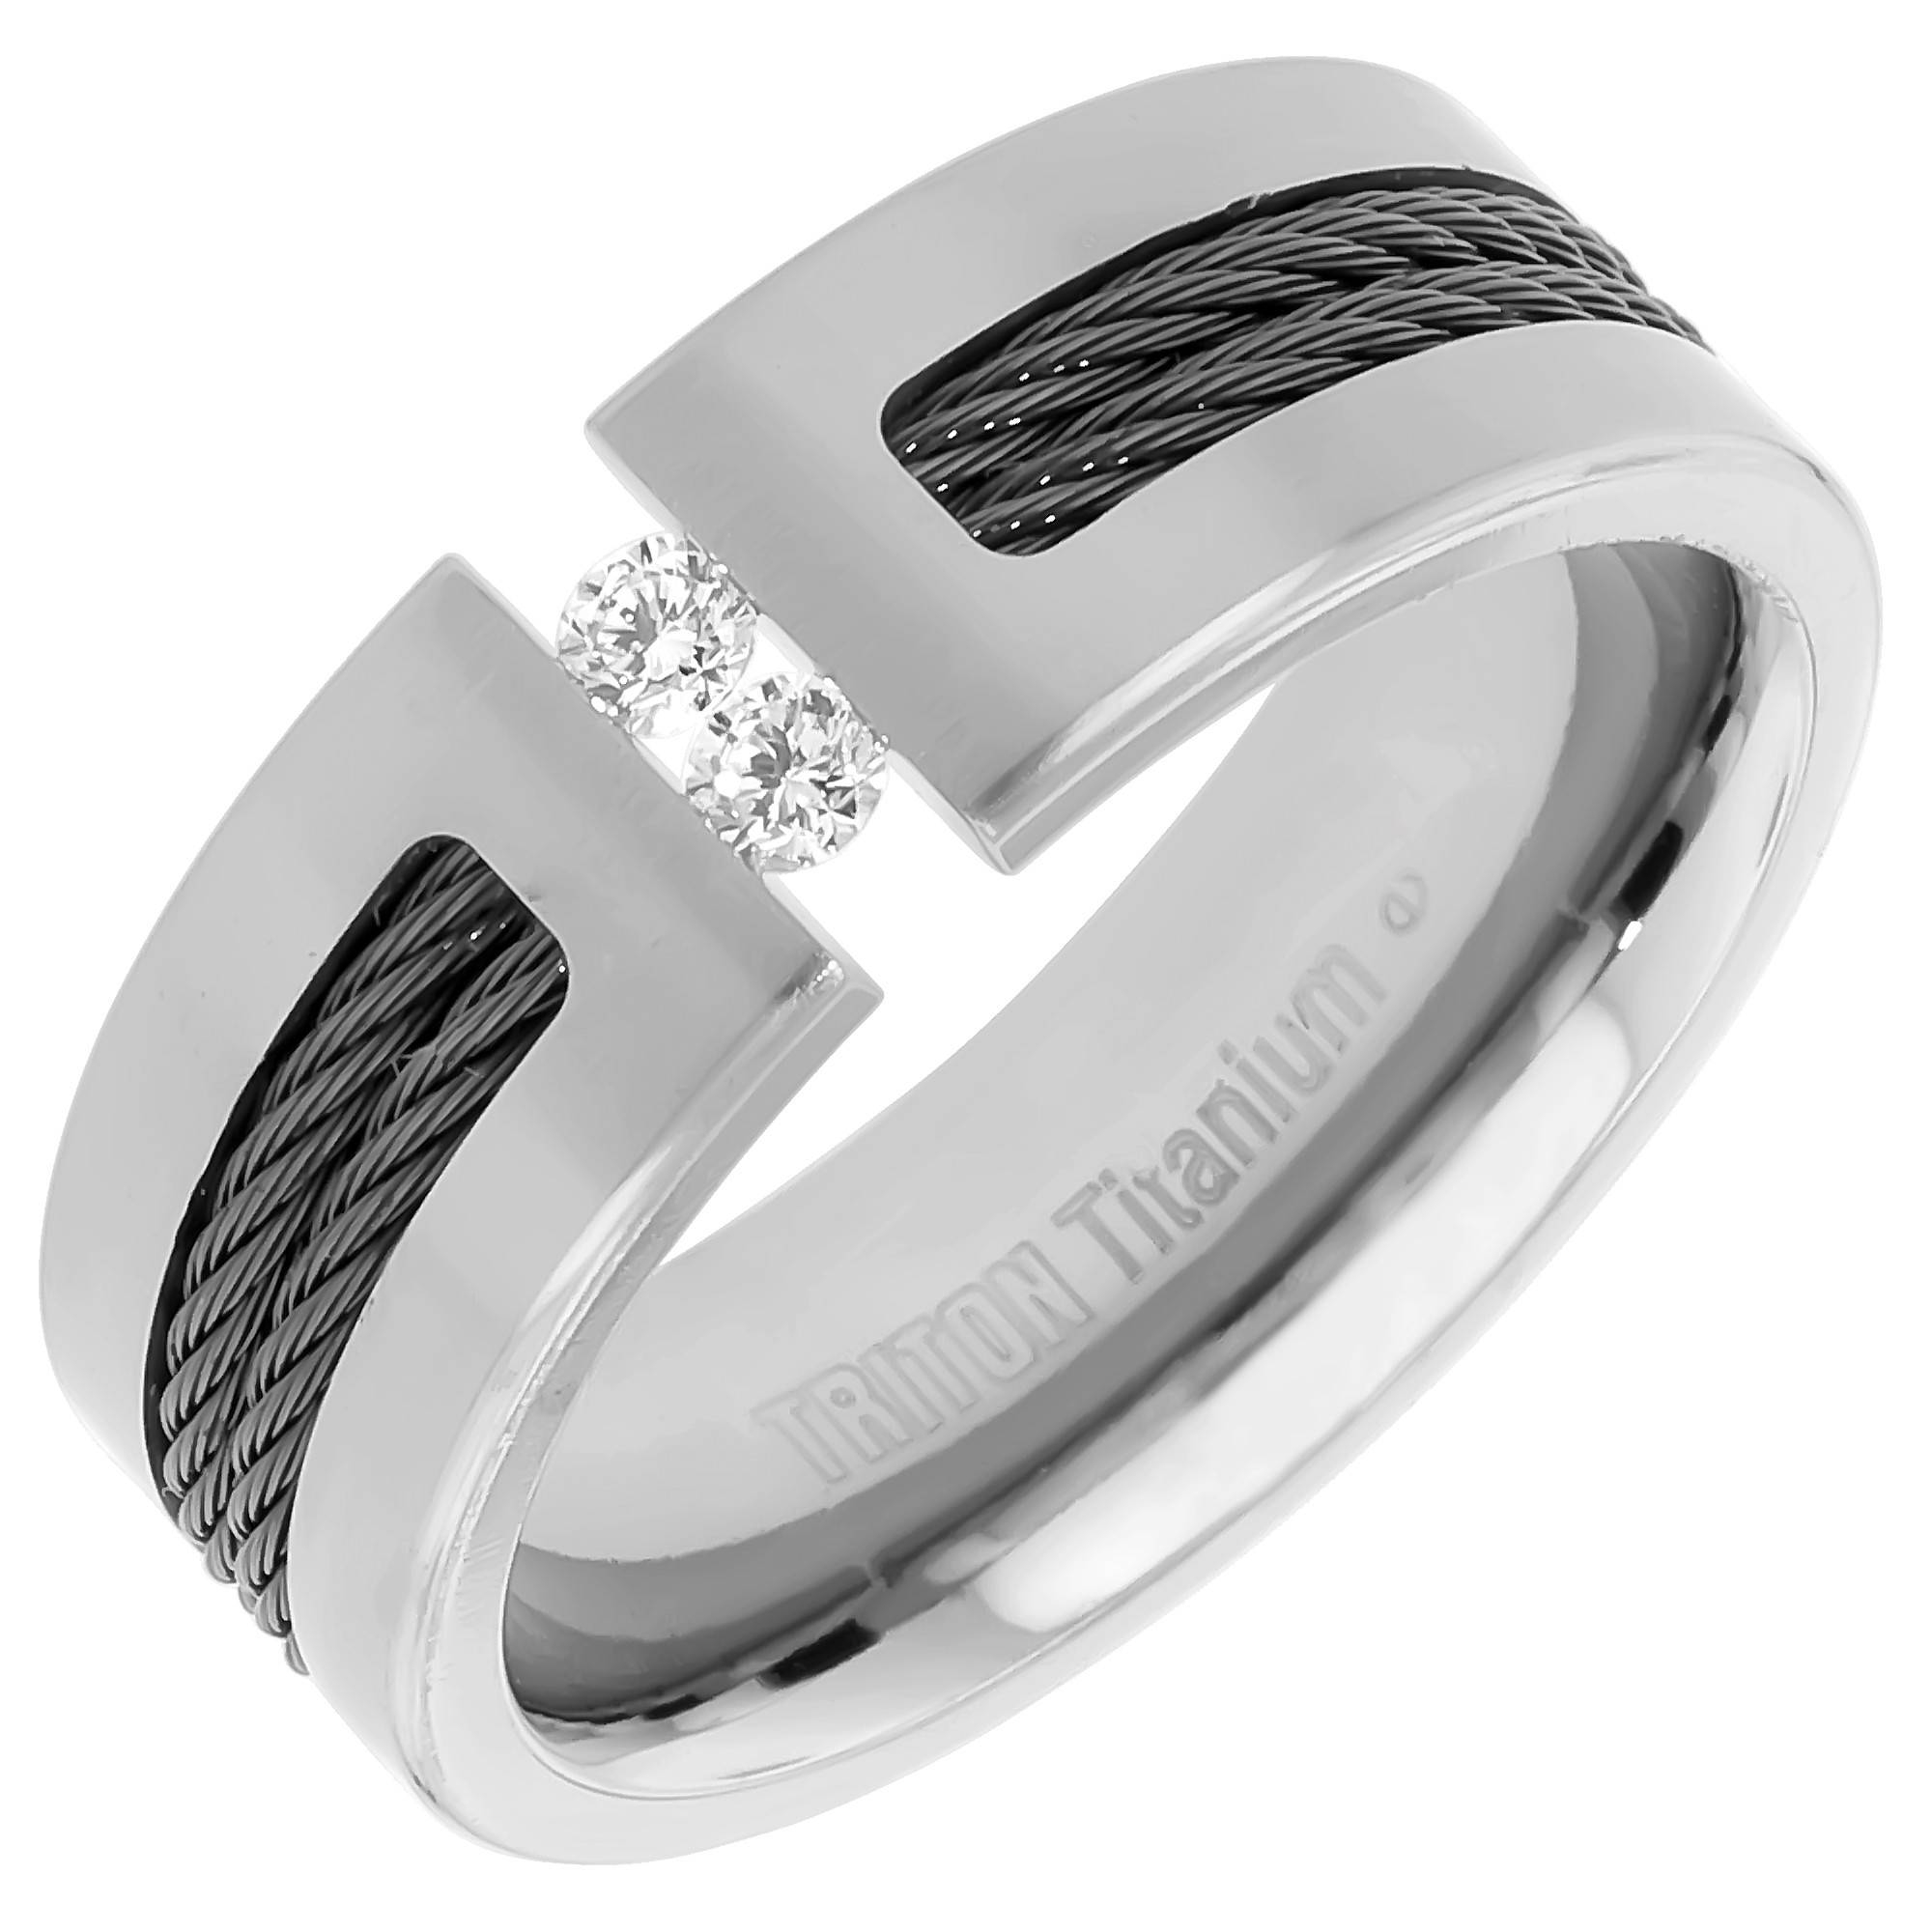 Mens Diamond Wedding Band In Titanium (8Mm) Regarding Men's Black Wedding Bands With Diamonds (View 4 of 15)